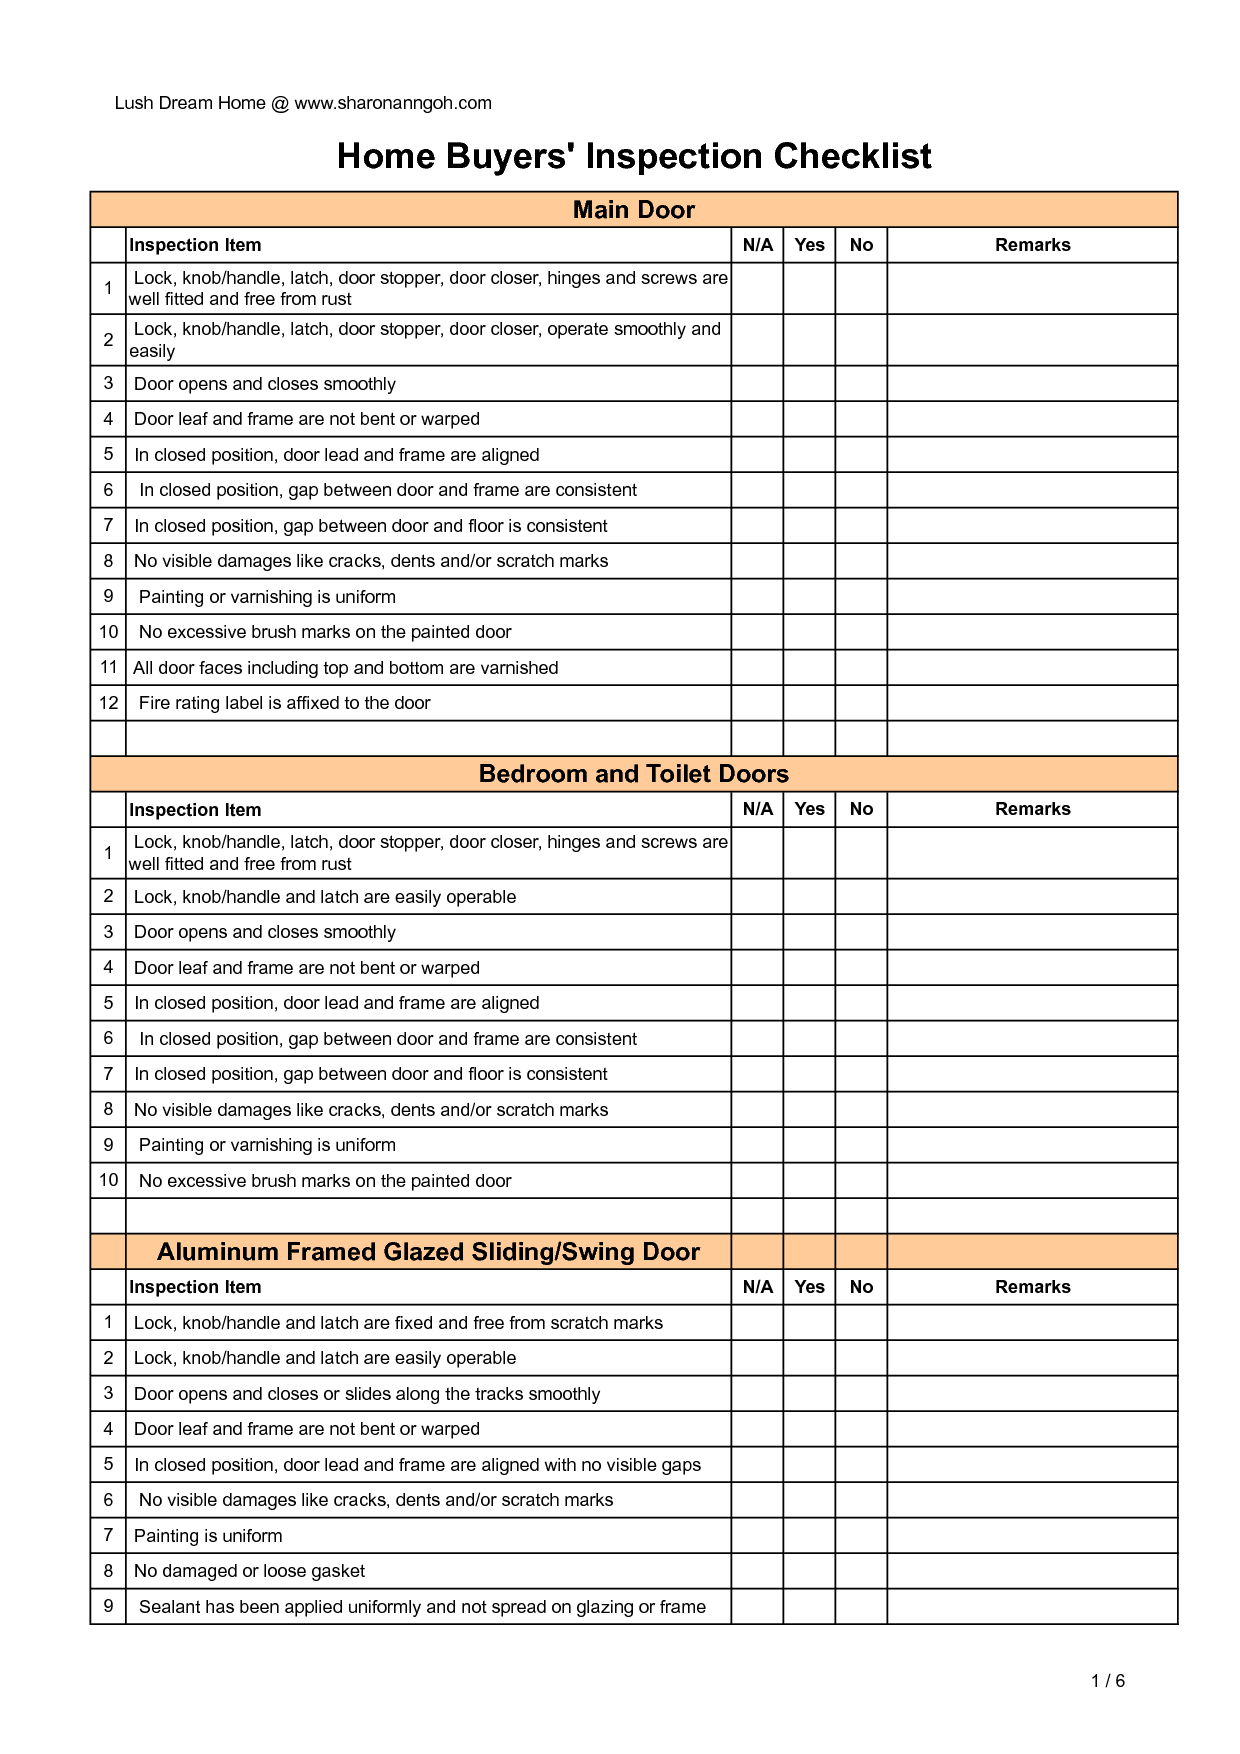 Creating A Home Inspection Checklist Using Microsoft Excel